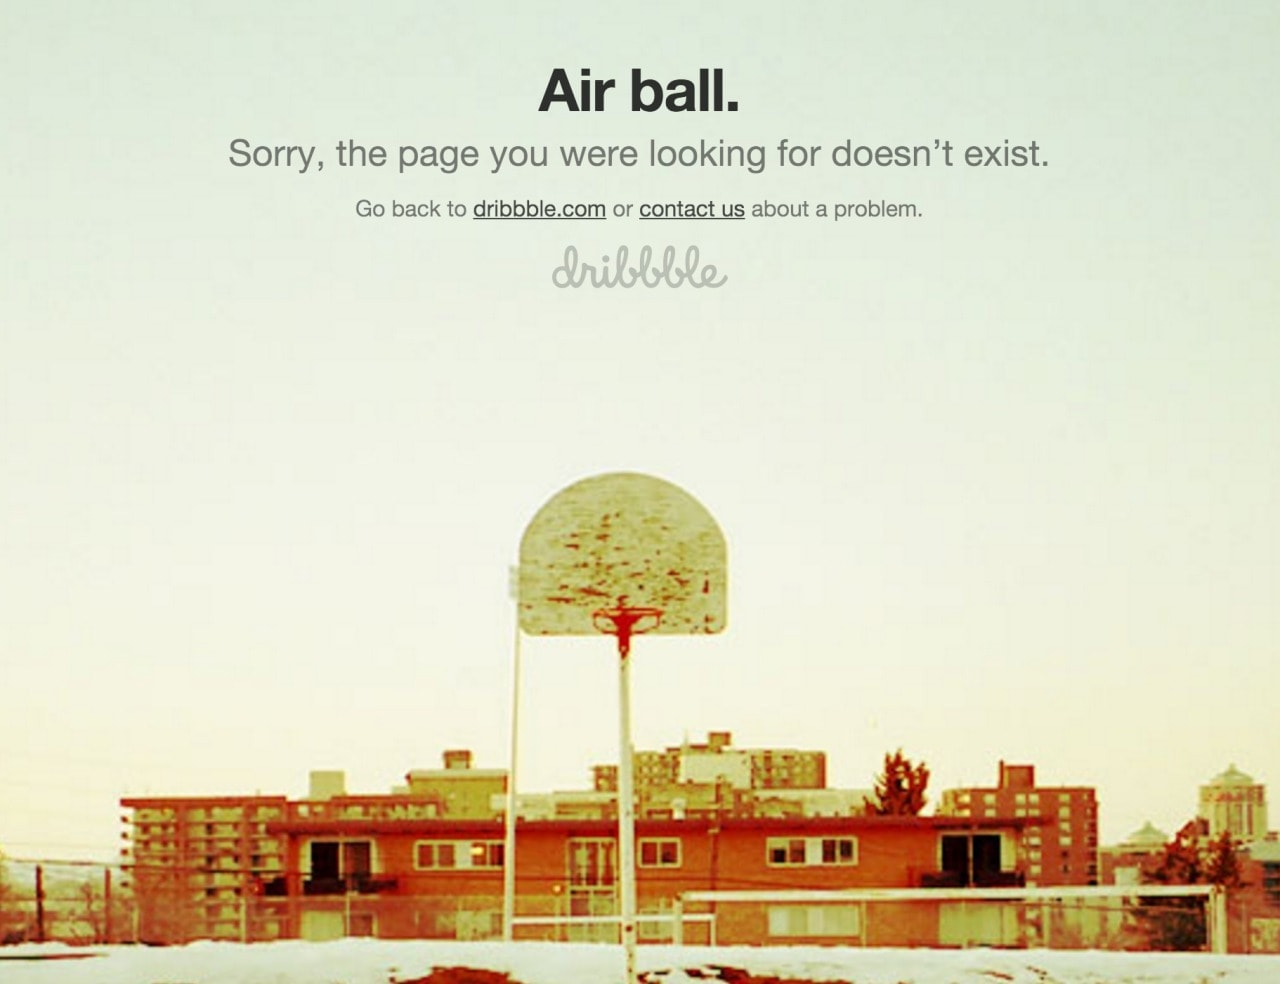 404 page by Dribbble from UIGarage